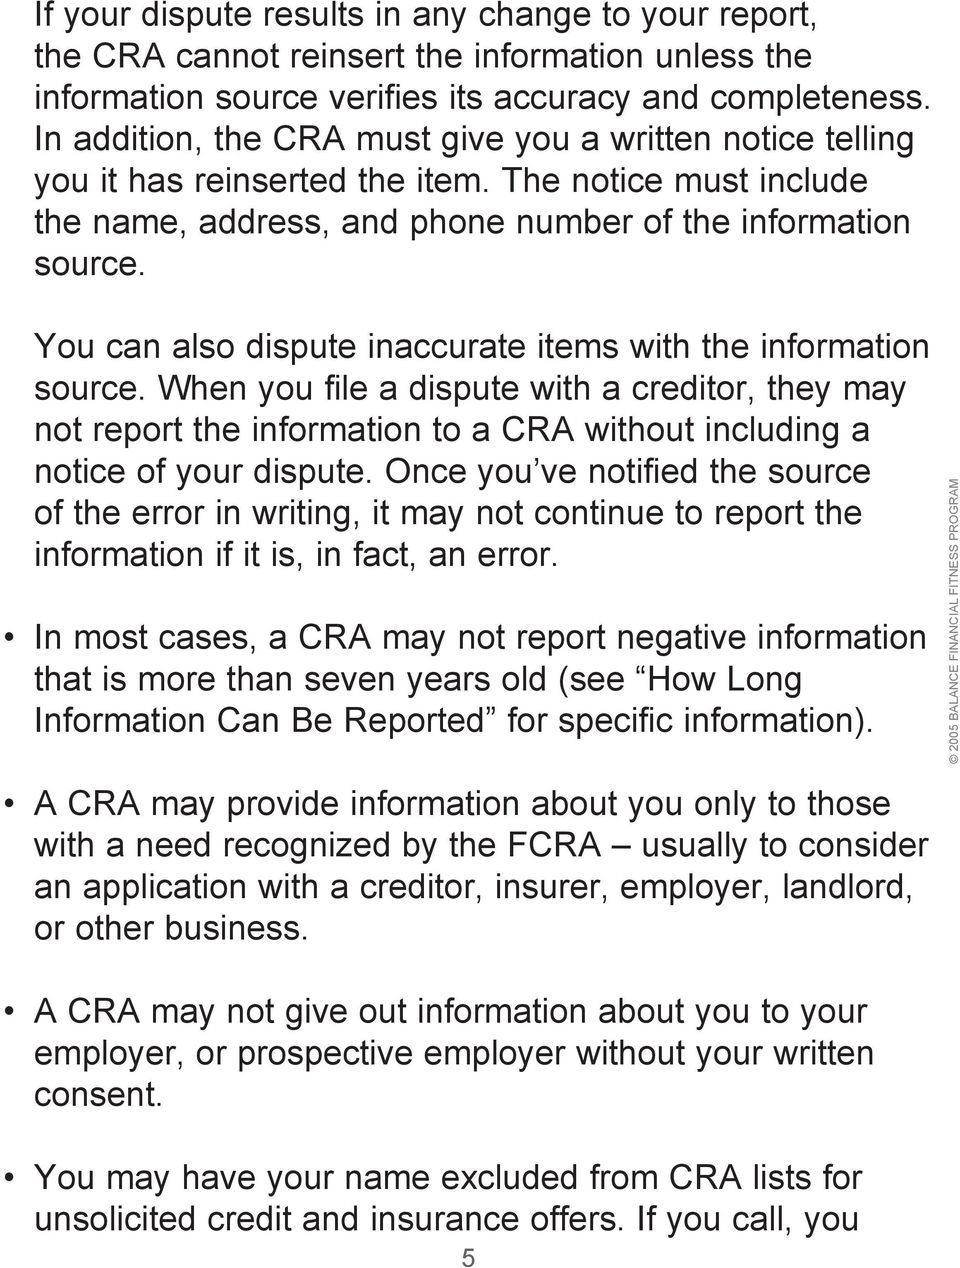 You can also dispute inaccurate items with the information source. When you file a dispute with a creditor, they may not report the information to a CRA without including a notice of your dispute.